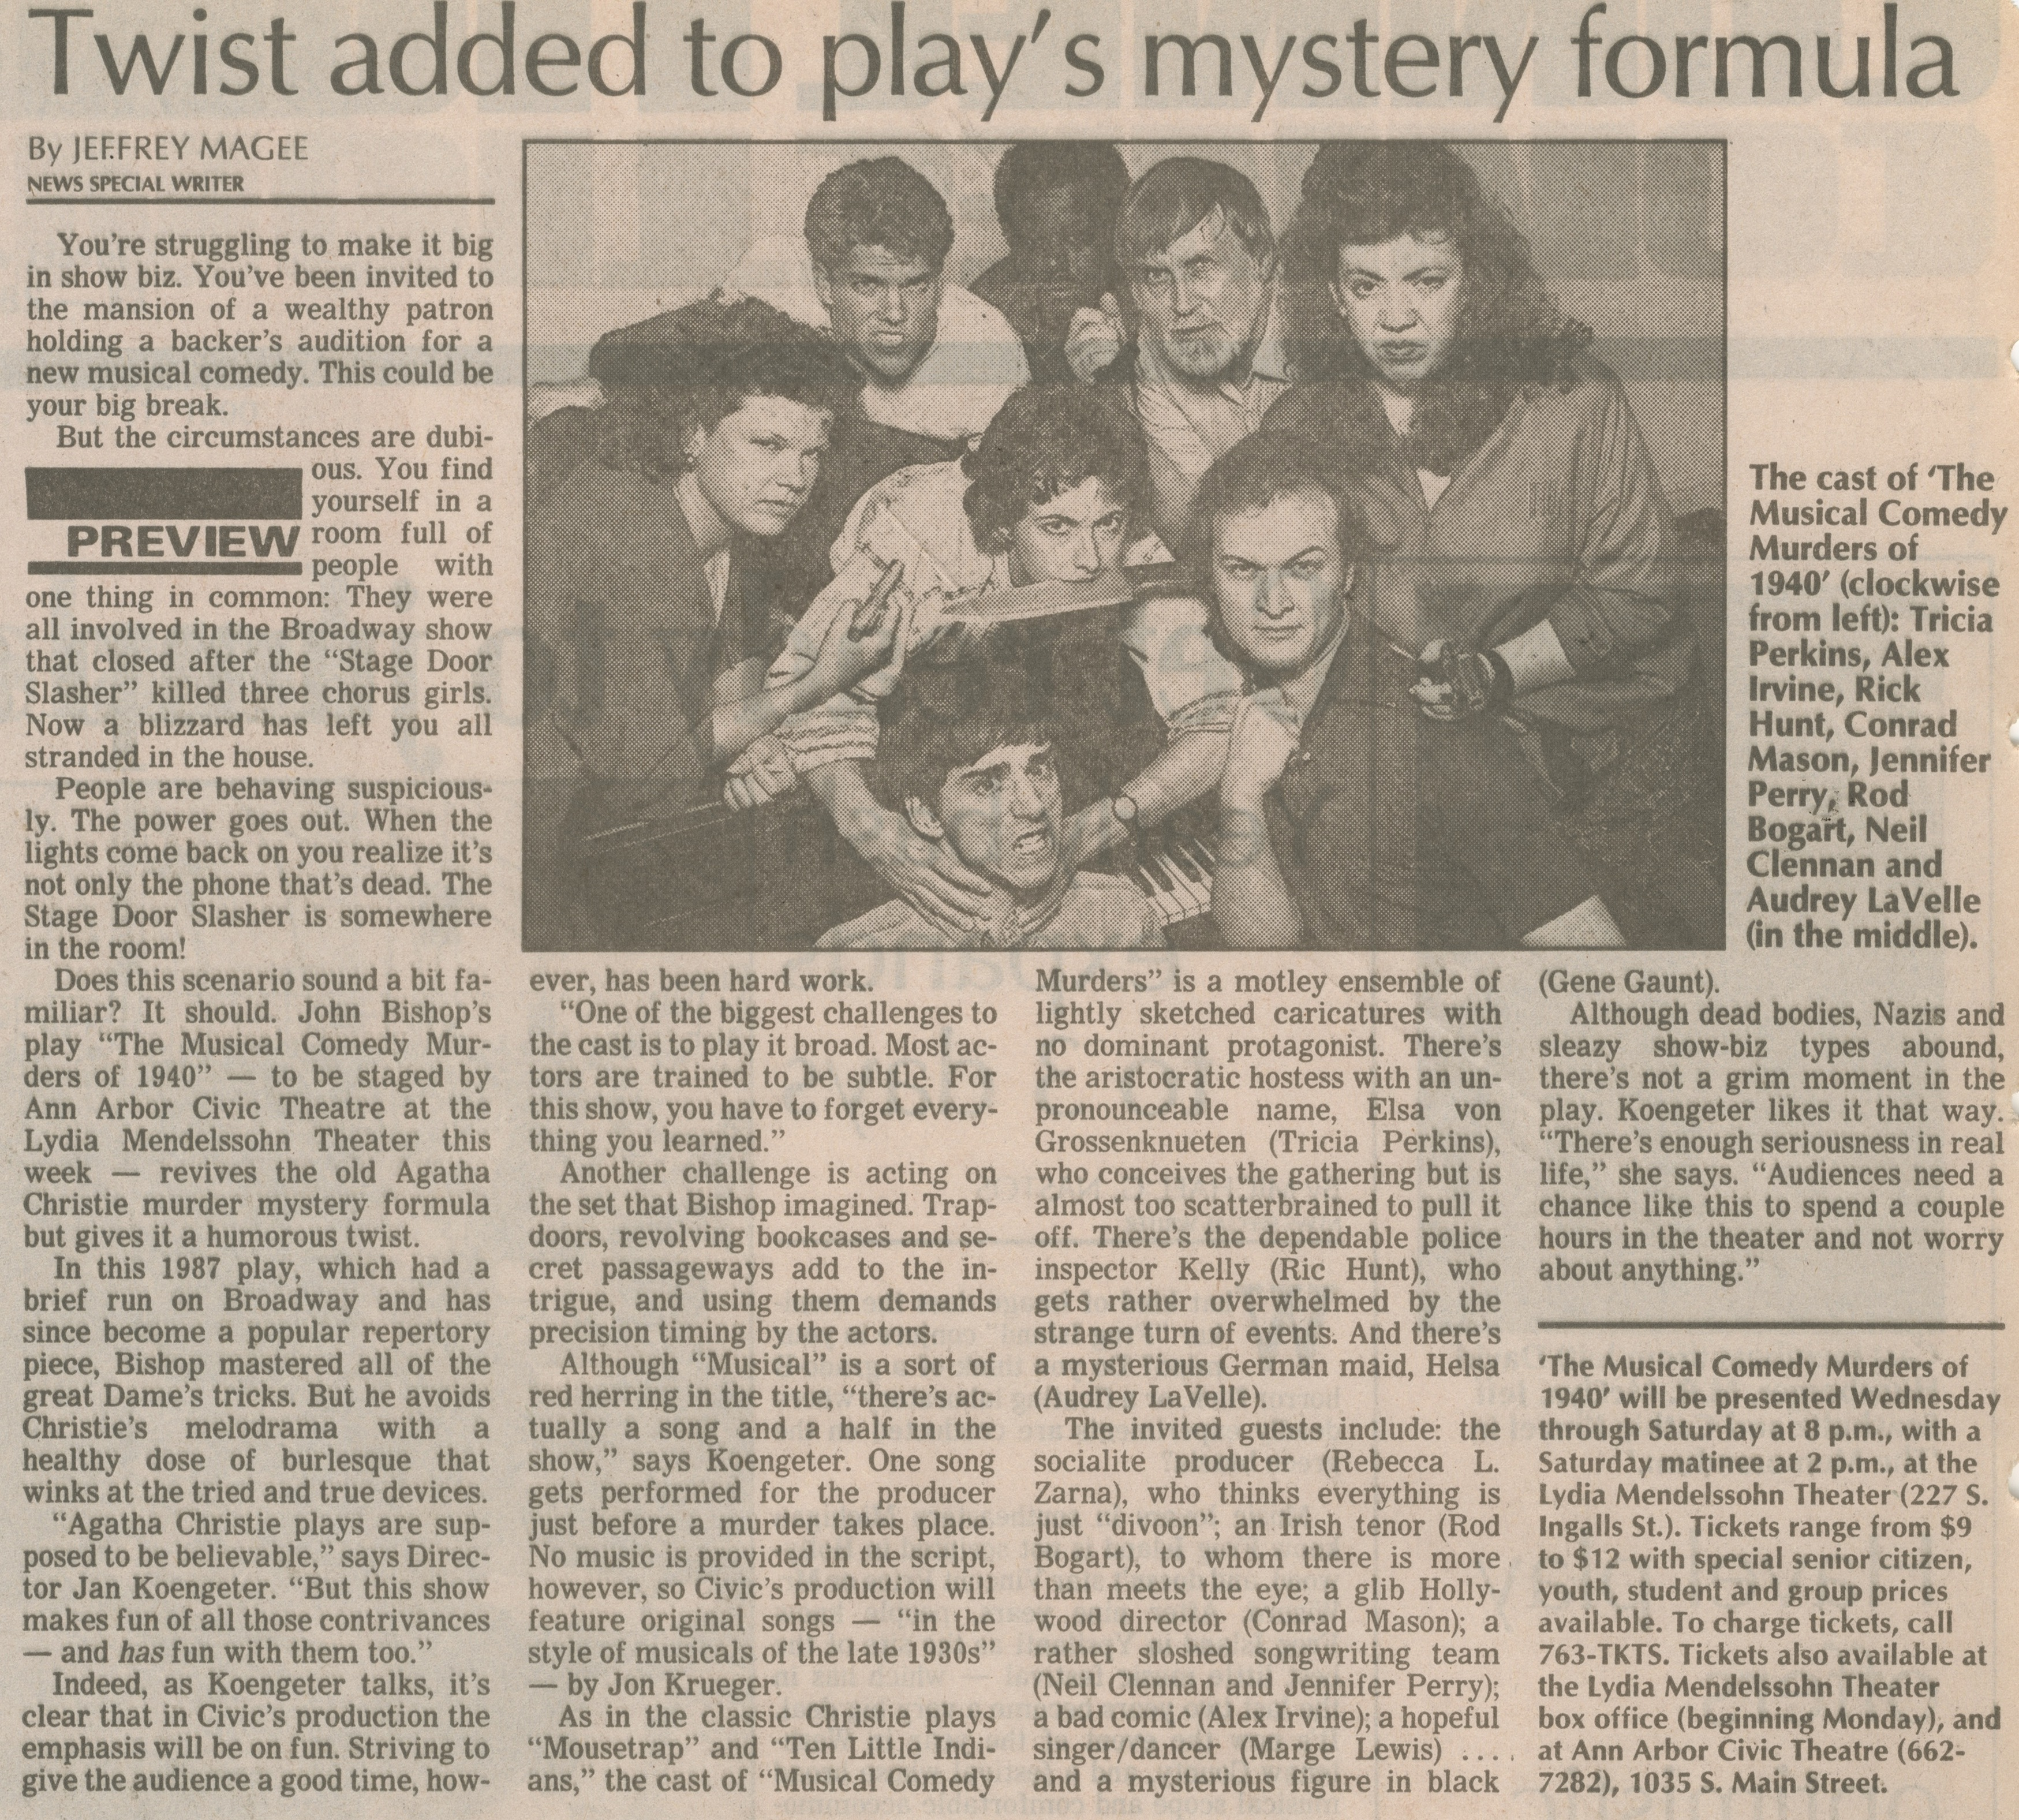 Twist Added To Play's Mystery Formula image